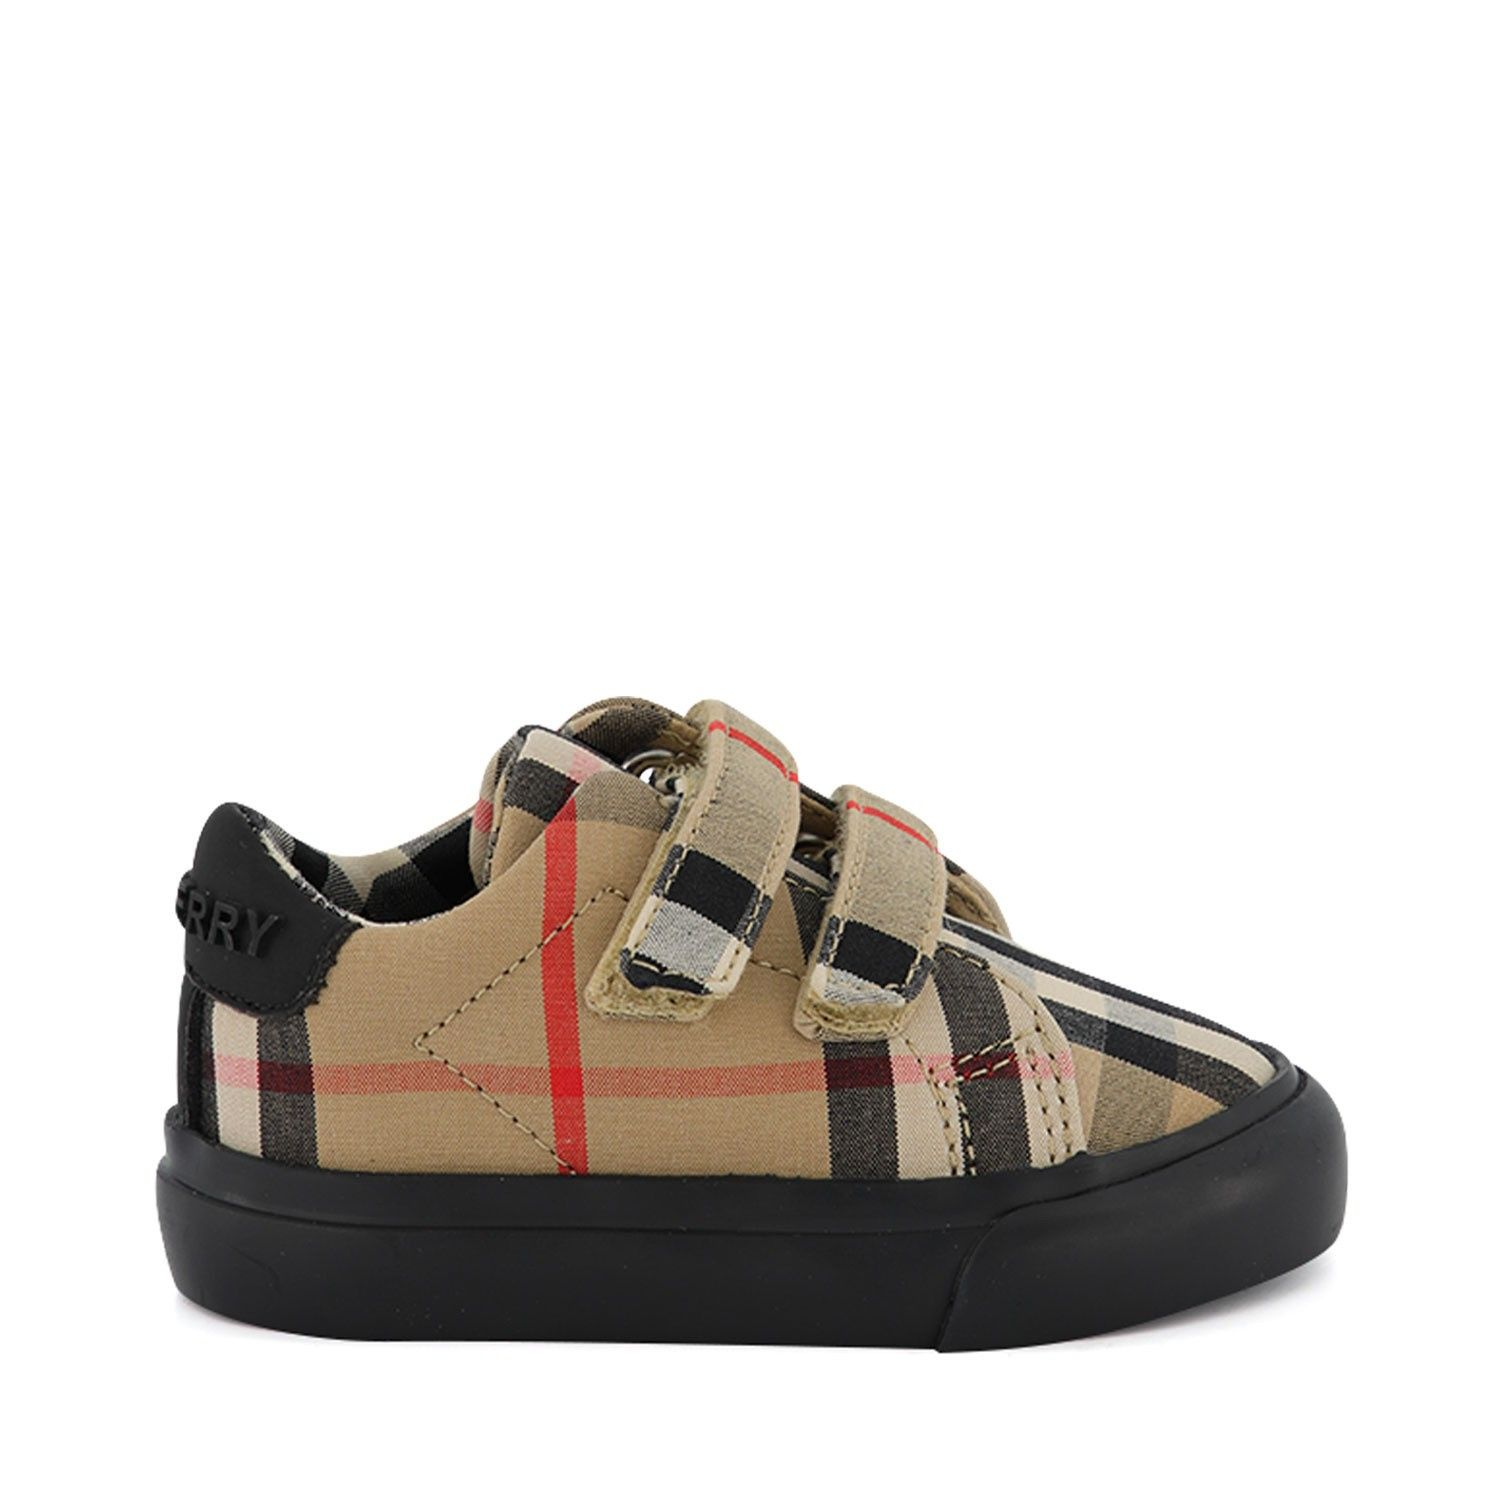 Picture of Burberry 8018492 kids sneakers black